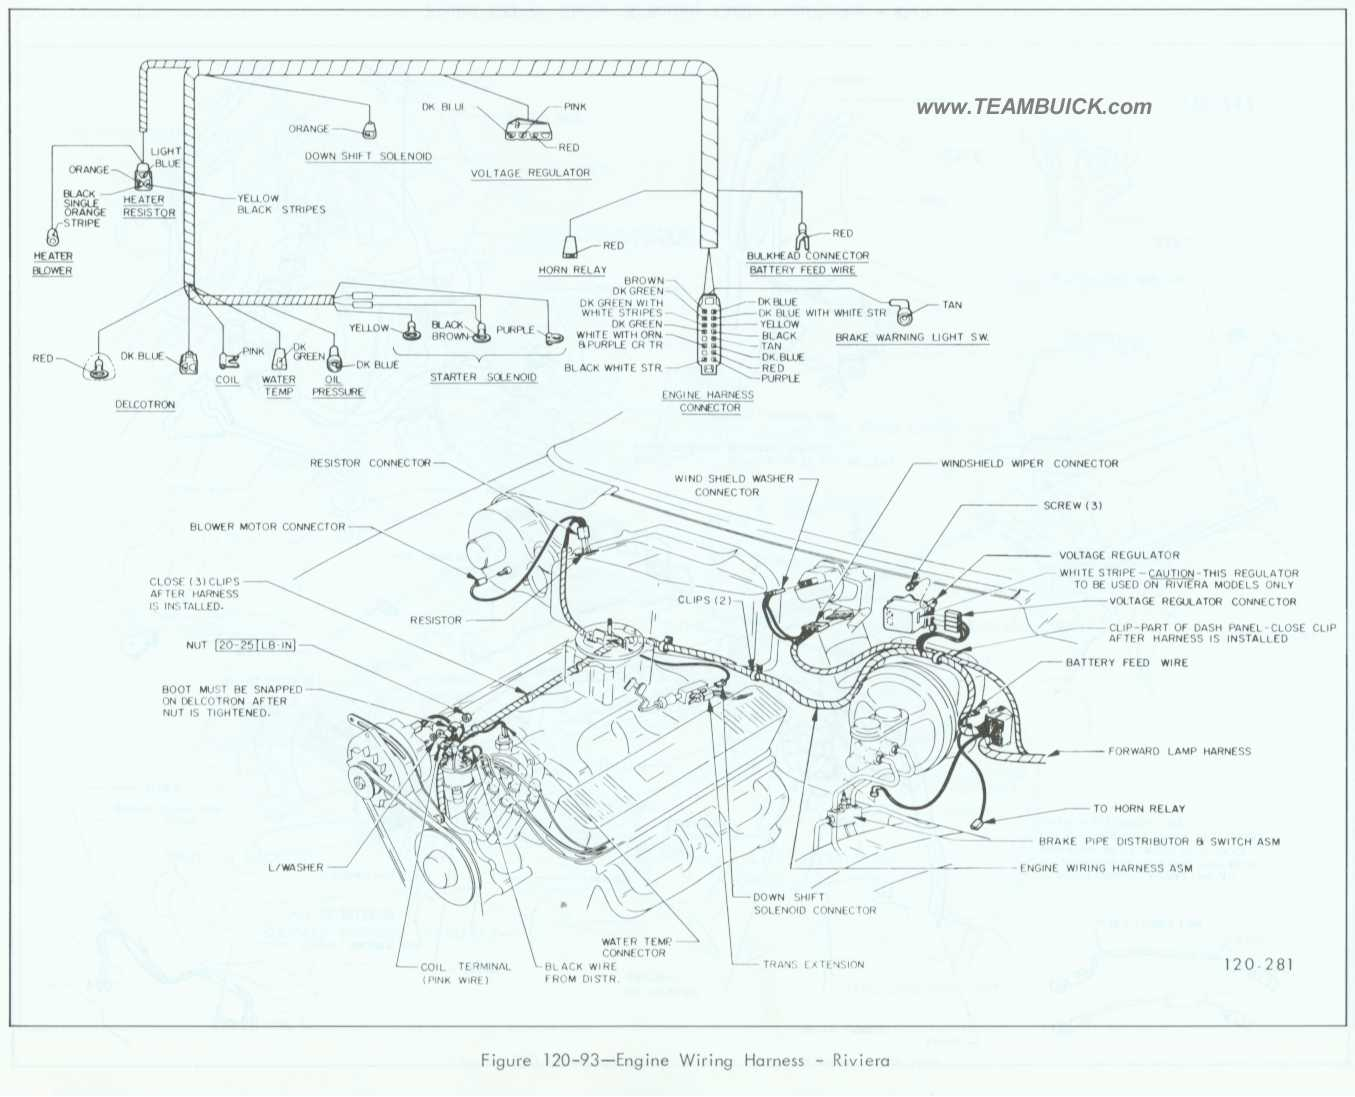 1967 Buick Riviera, Engine Wiring Harness